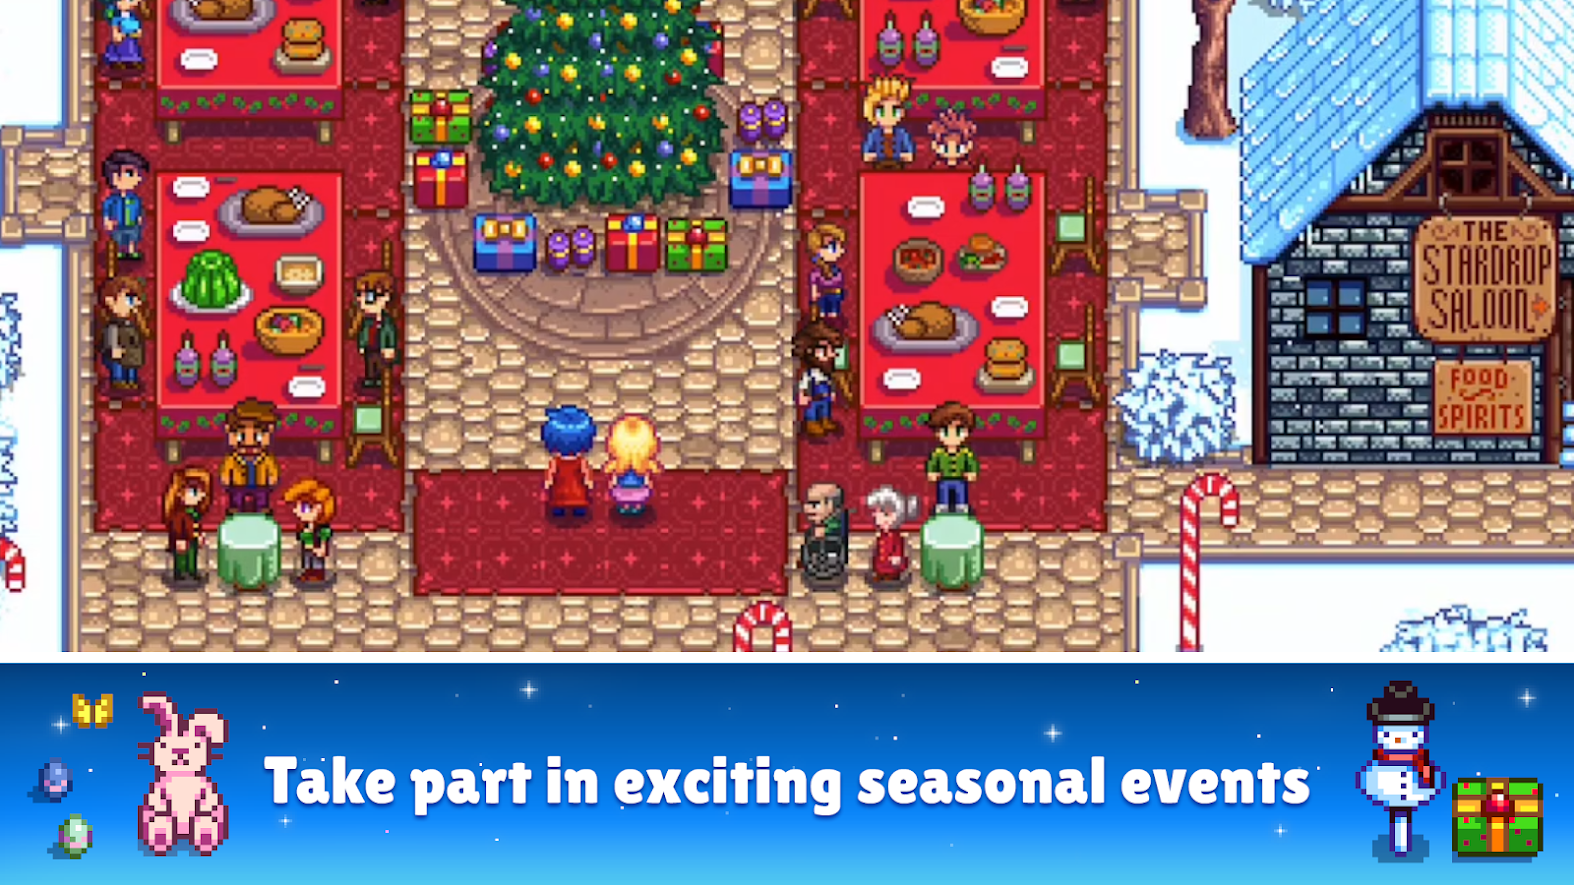 Update: Coming March 14th] Stardew Valley is available for pre